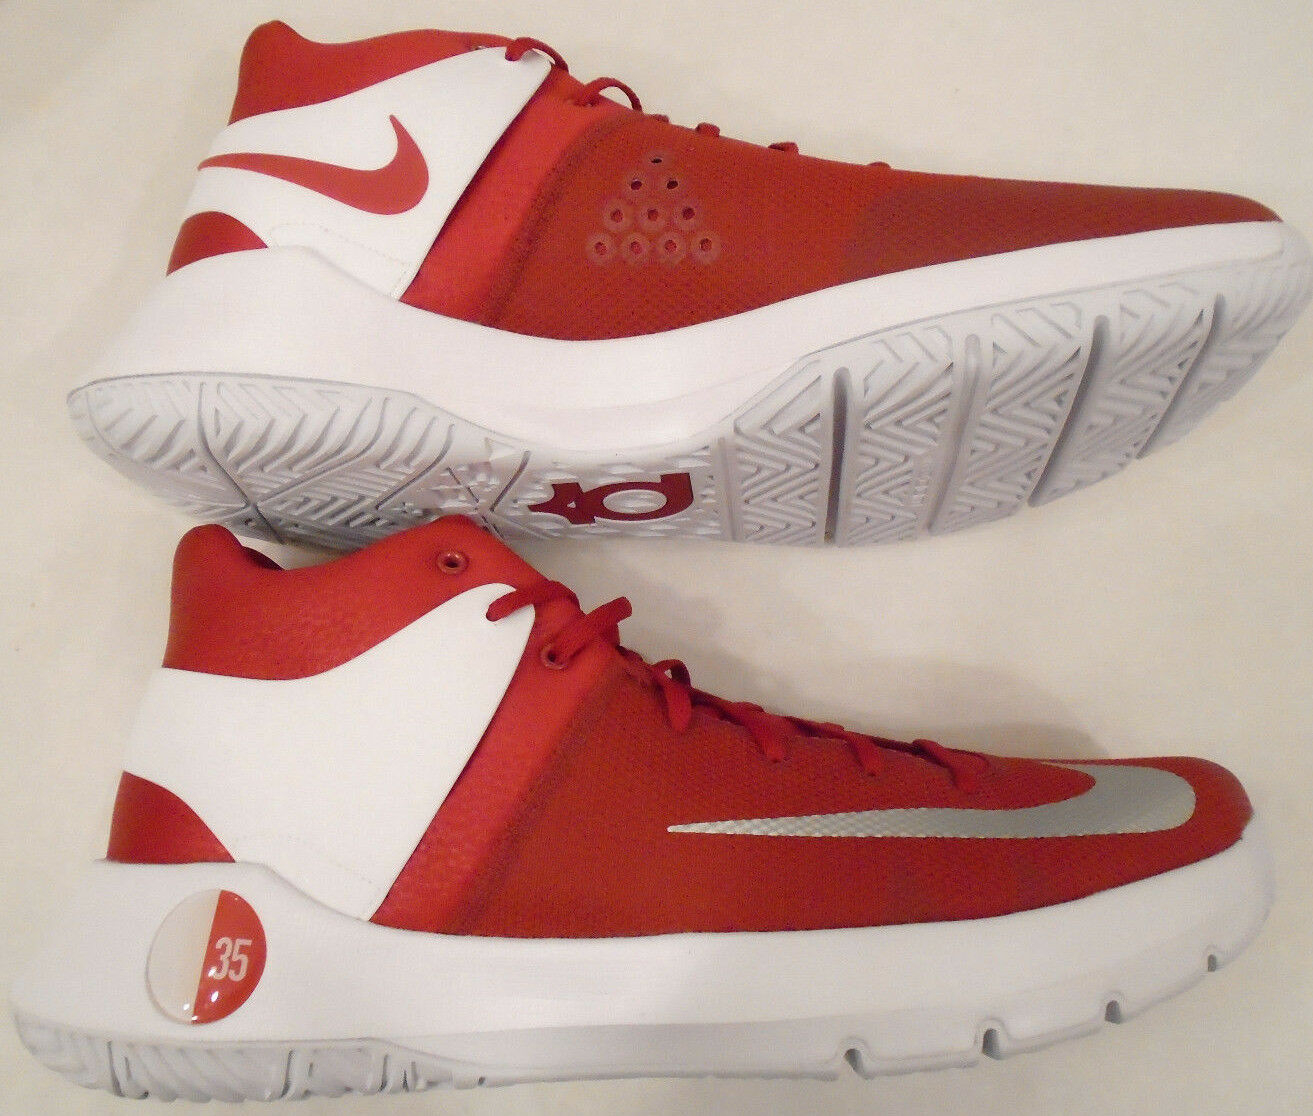 NEW Nike Mens 16.5 Kevin Durant KD Trey 5 IV Basketball Shoes Red 856484-661